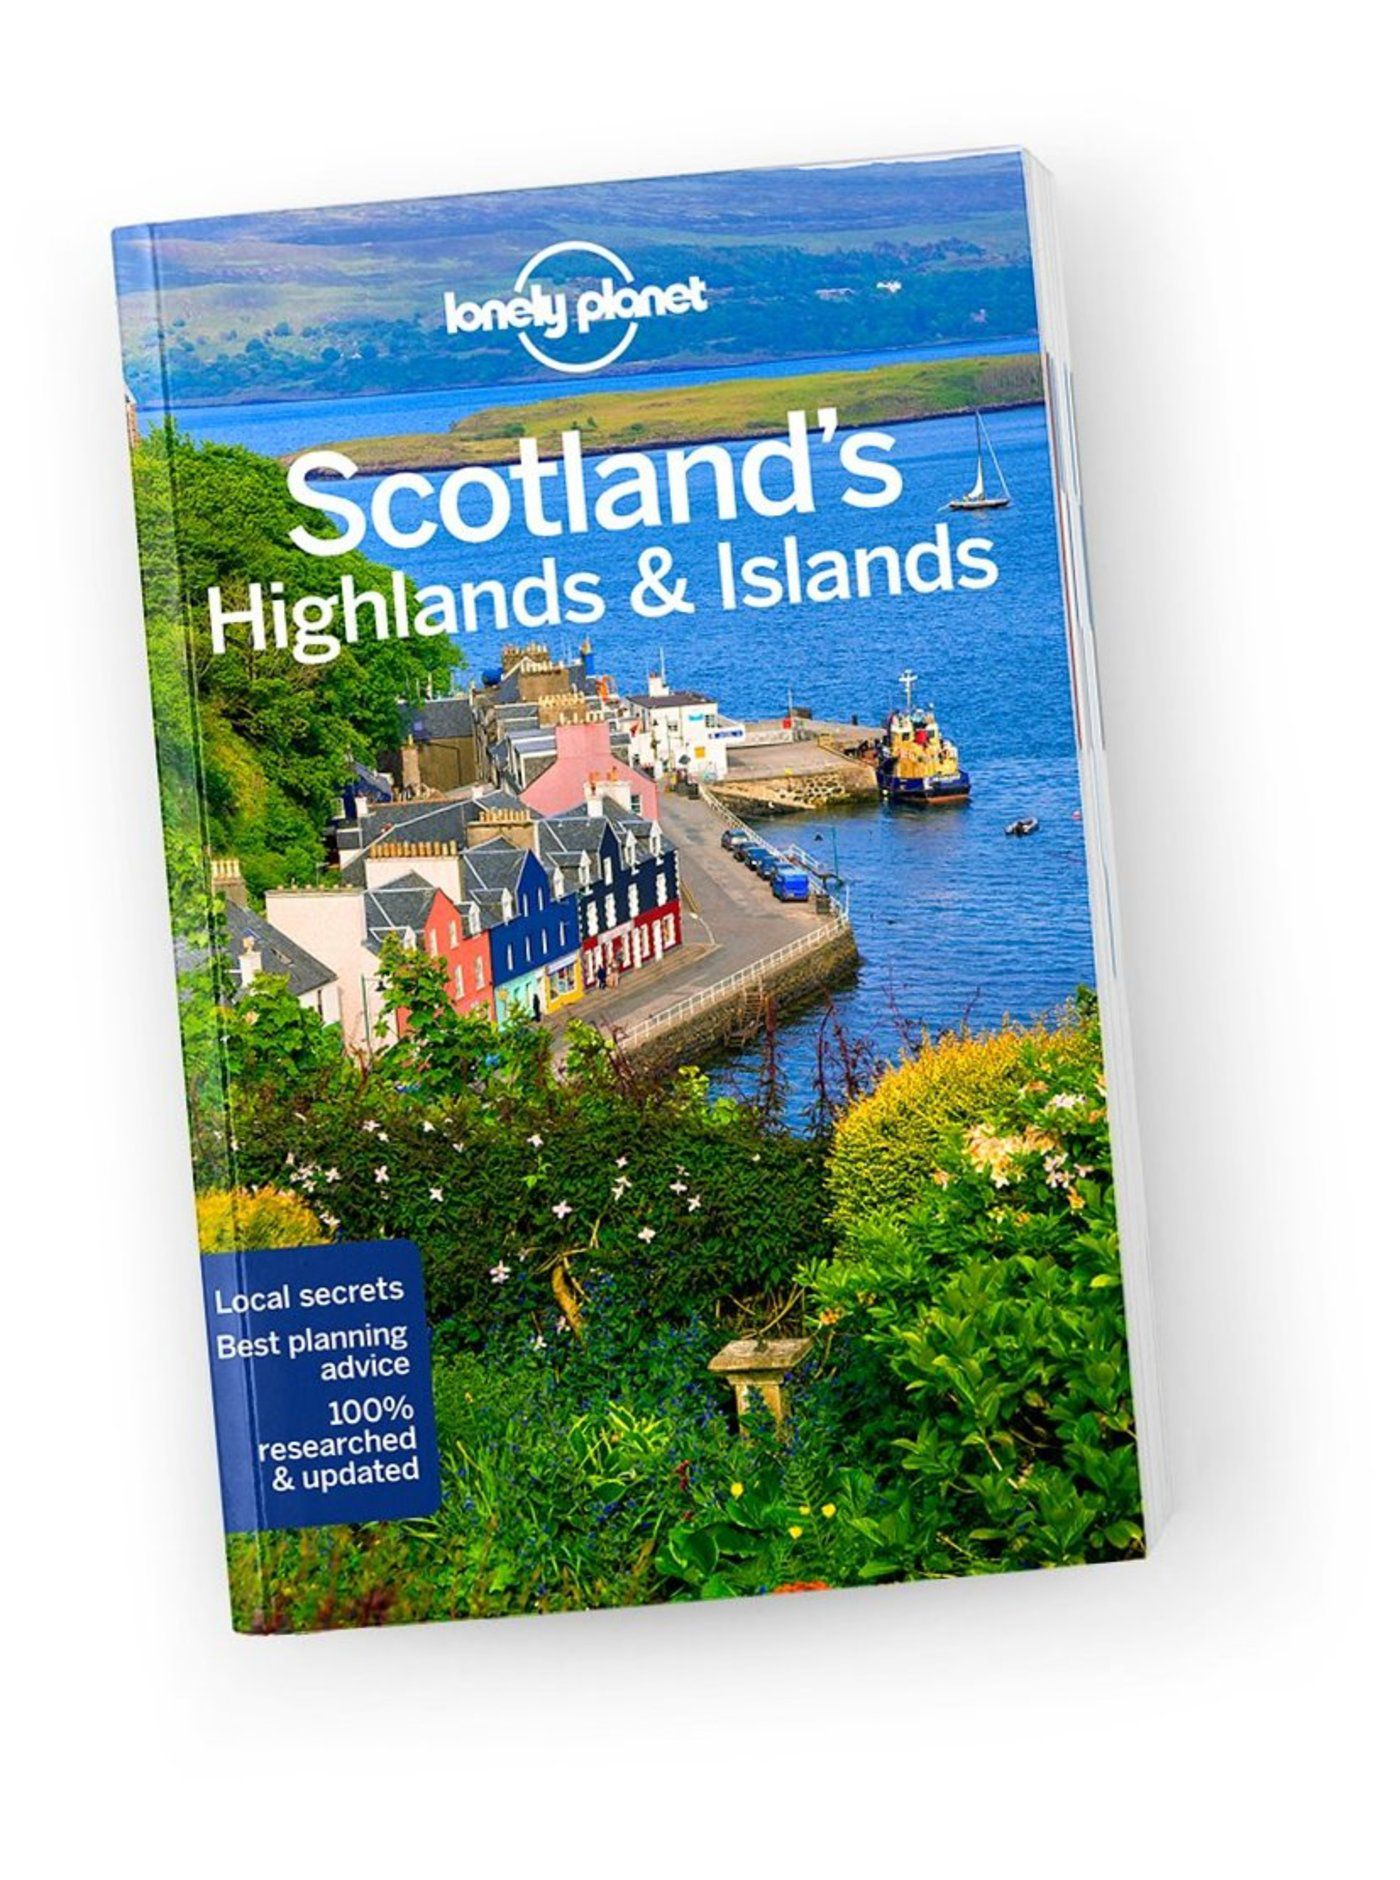 Scotland's Highlands & Islands travel guide